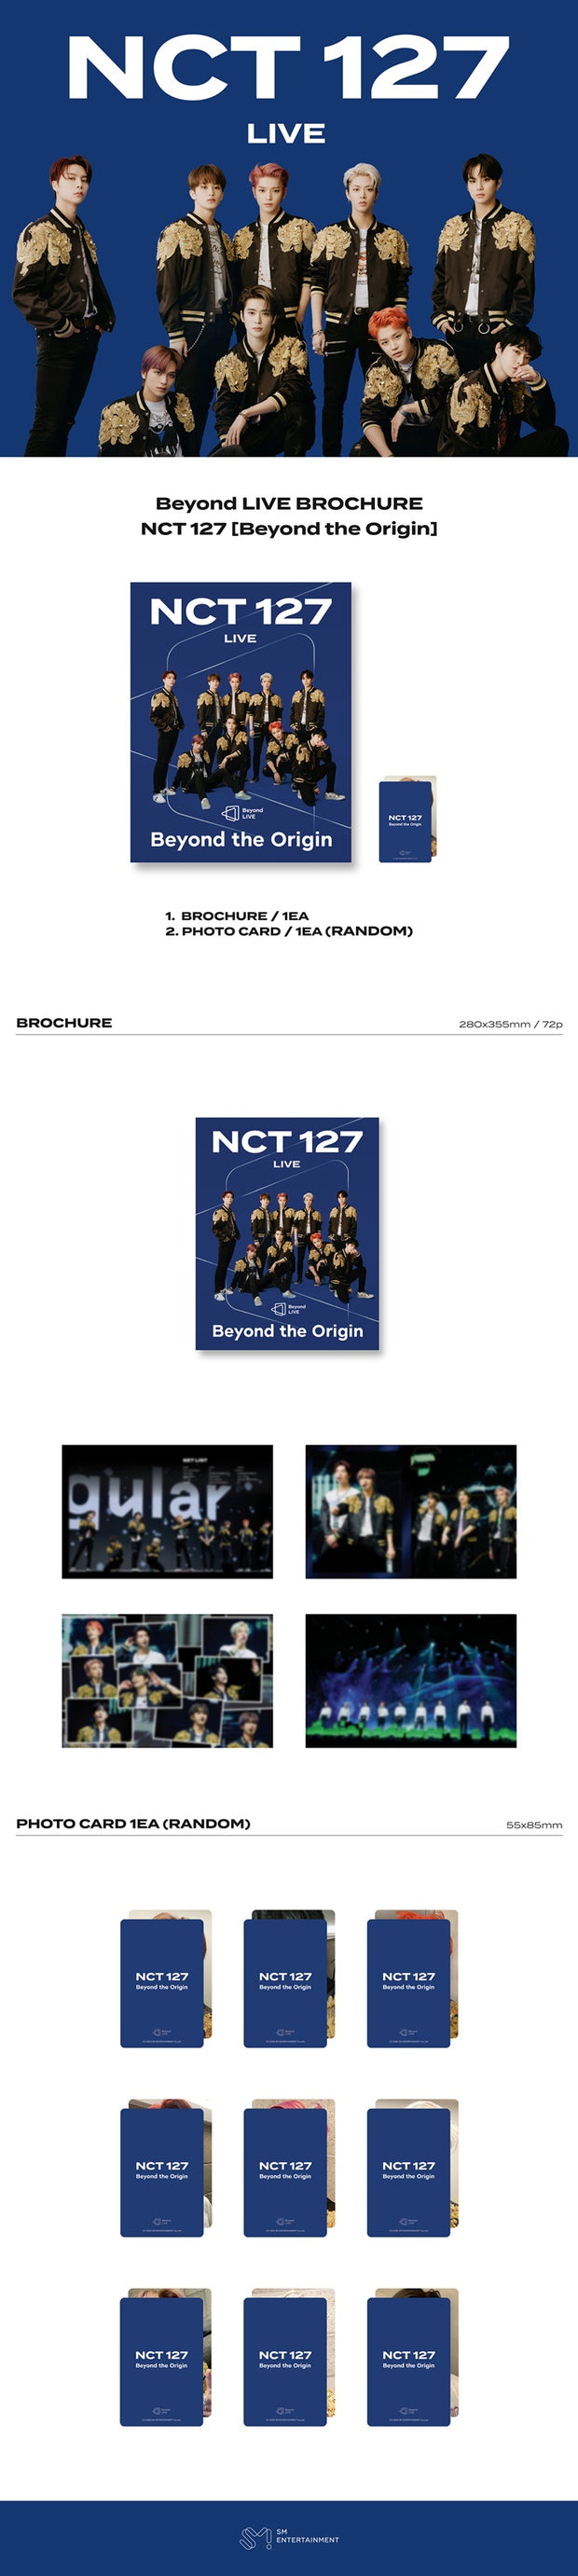 NCT 127 - OFFICIAL Beyond the Origin : Beyond LIVE BROCHURE